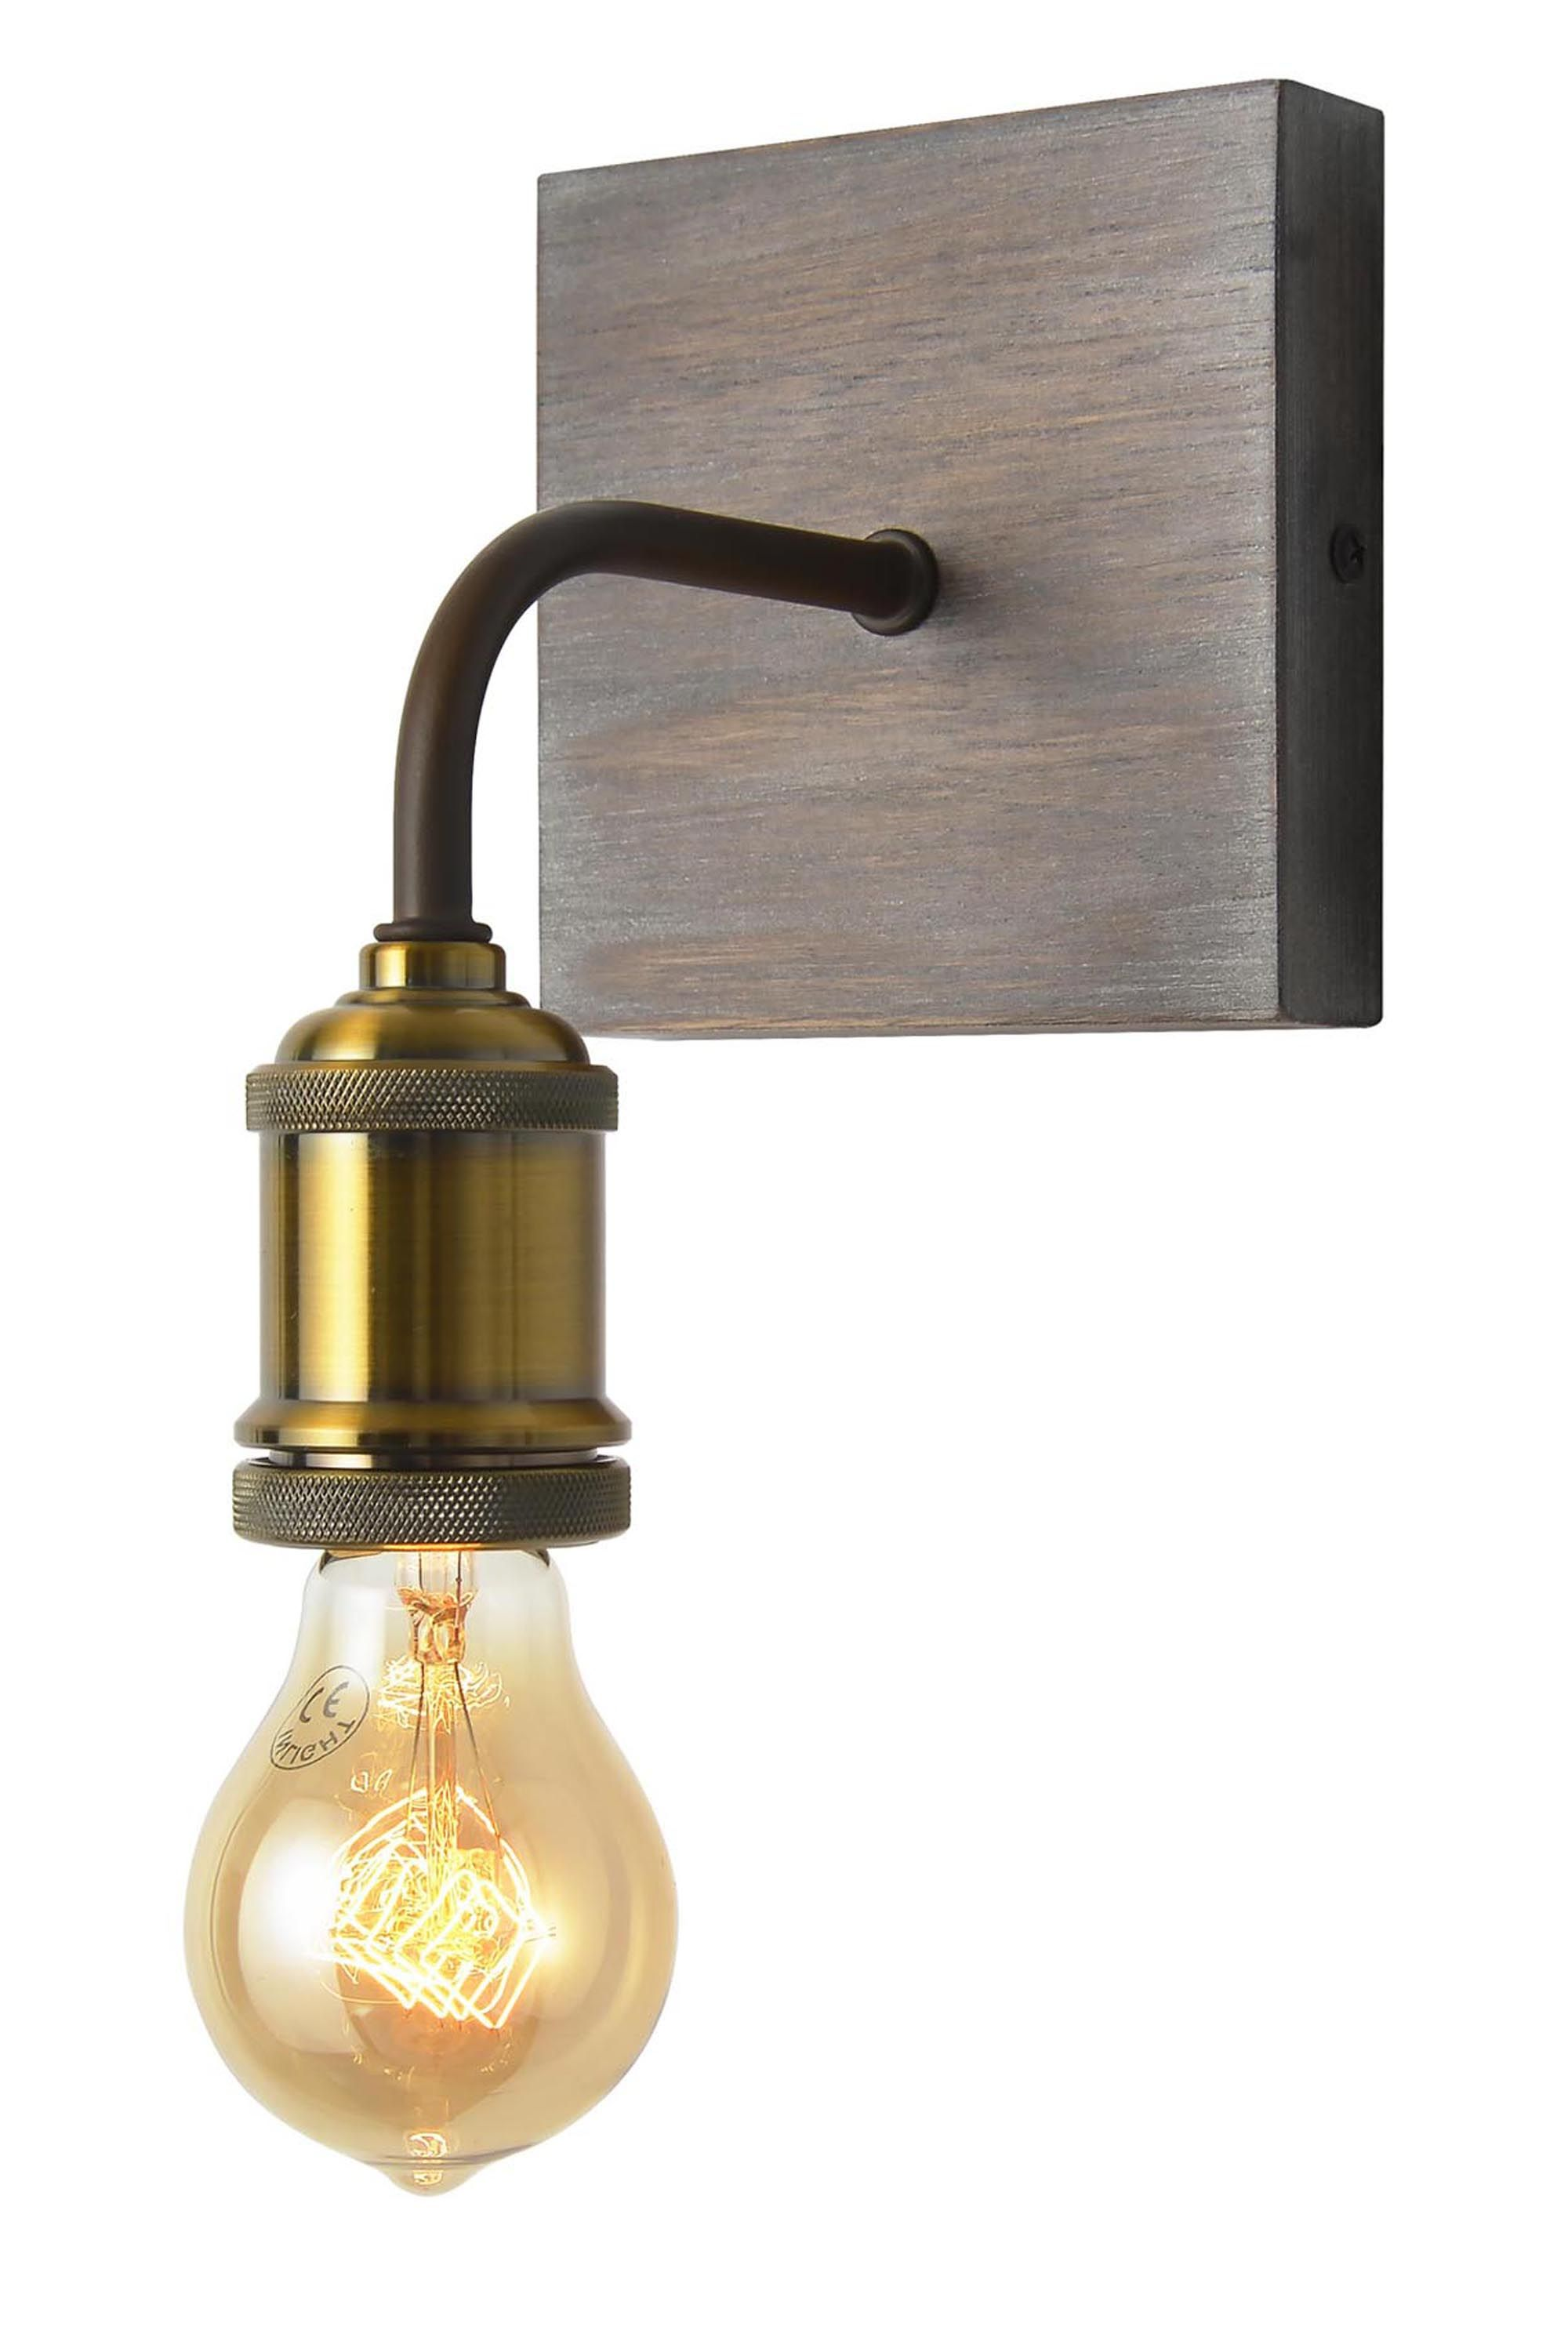 35 Harlem Wall Light Wood One Size Bhs Wall Lights